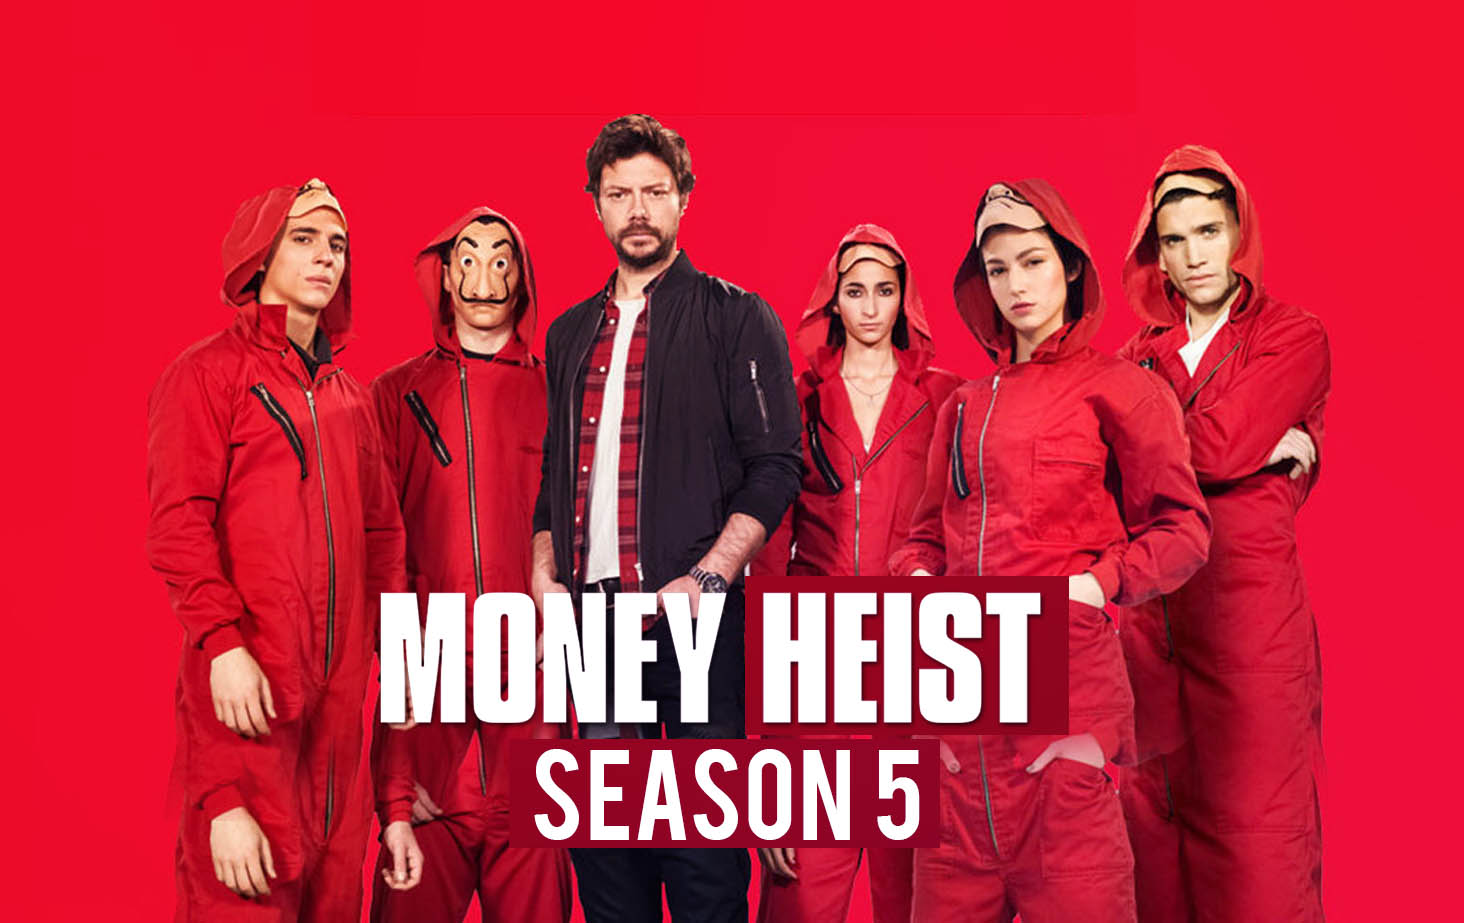 Money Heist Season 5 Release Date and Trailer